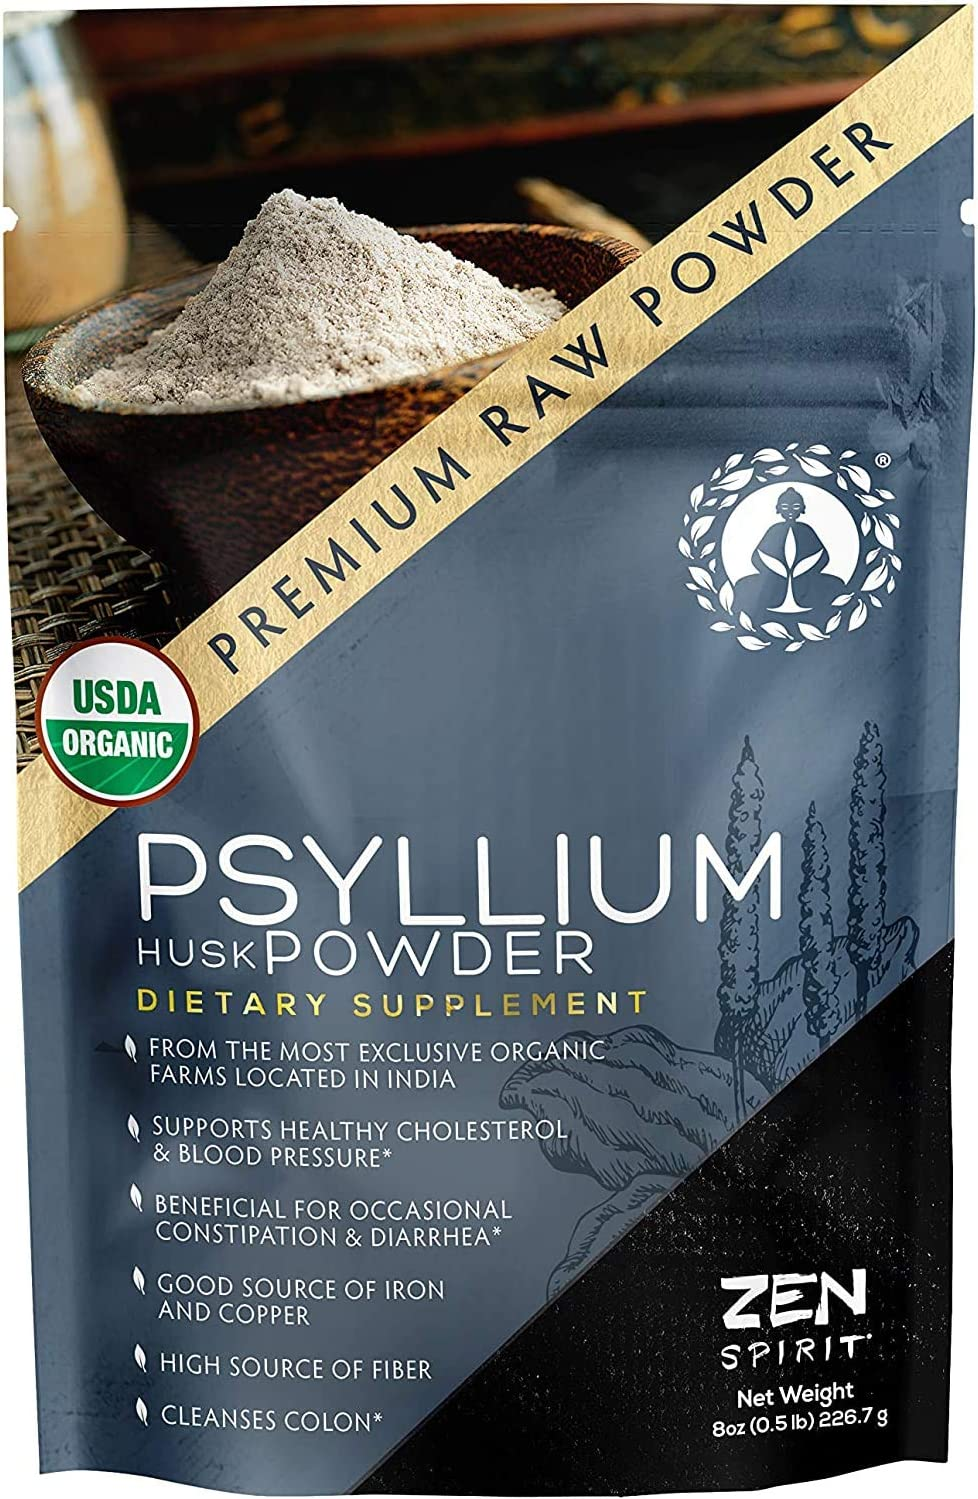 Psyllium Husk Powder - 0.5 LB (8 oz) Indian Organic Fiber Premium Grade Superfood (Raw) - USDA & Vegan Certified - - Perfect for Smoothies, Baking, Desserts & Breakfast.